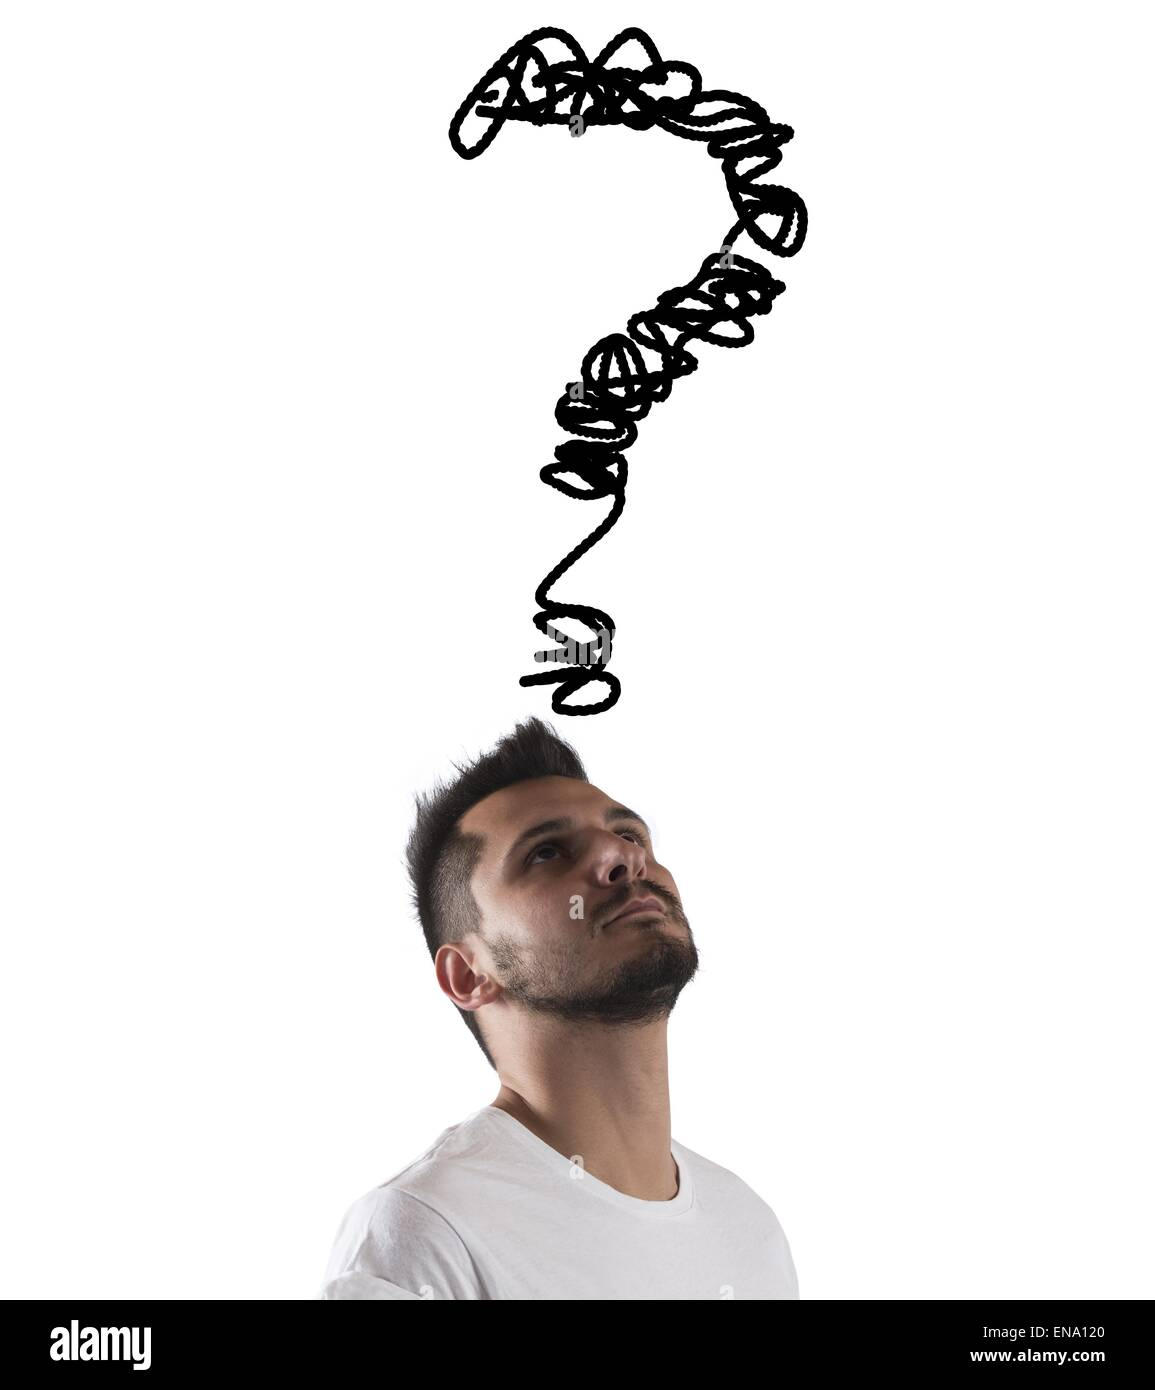 Big question on head - Stock Image